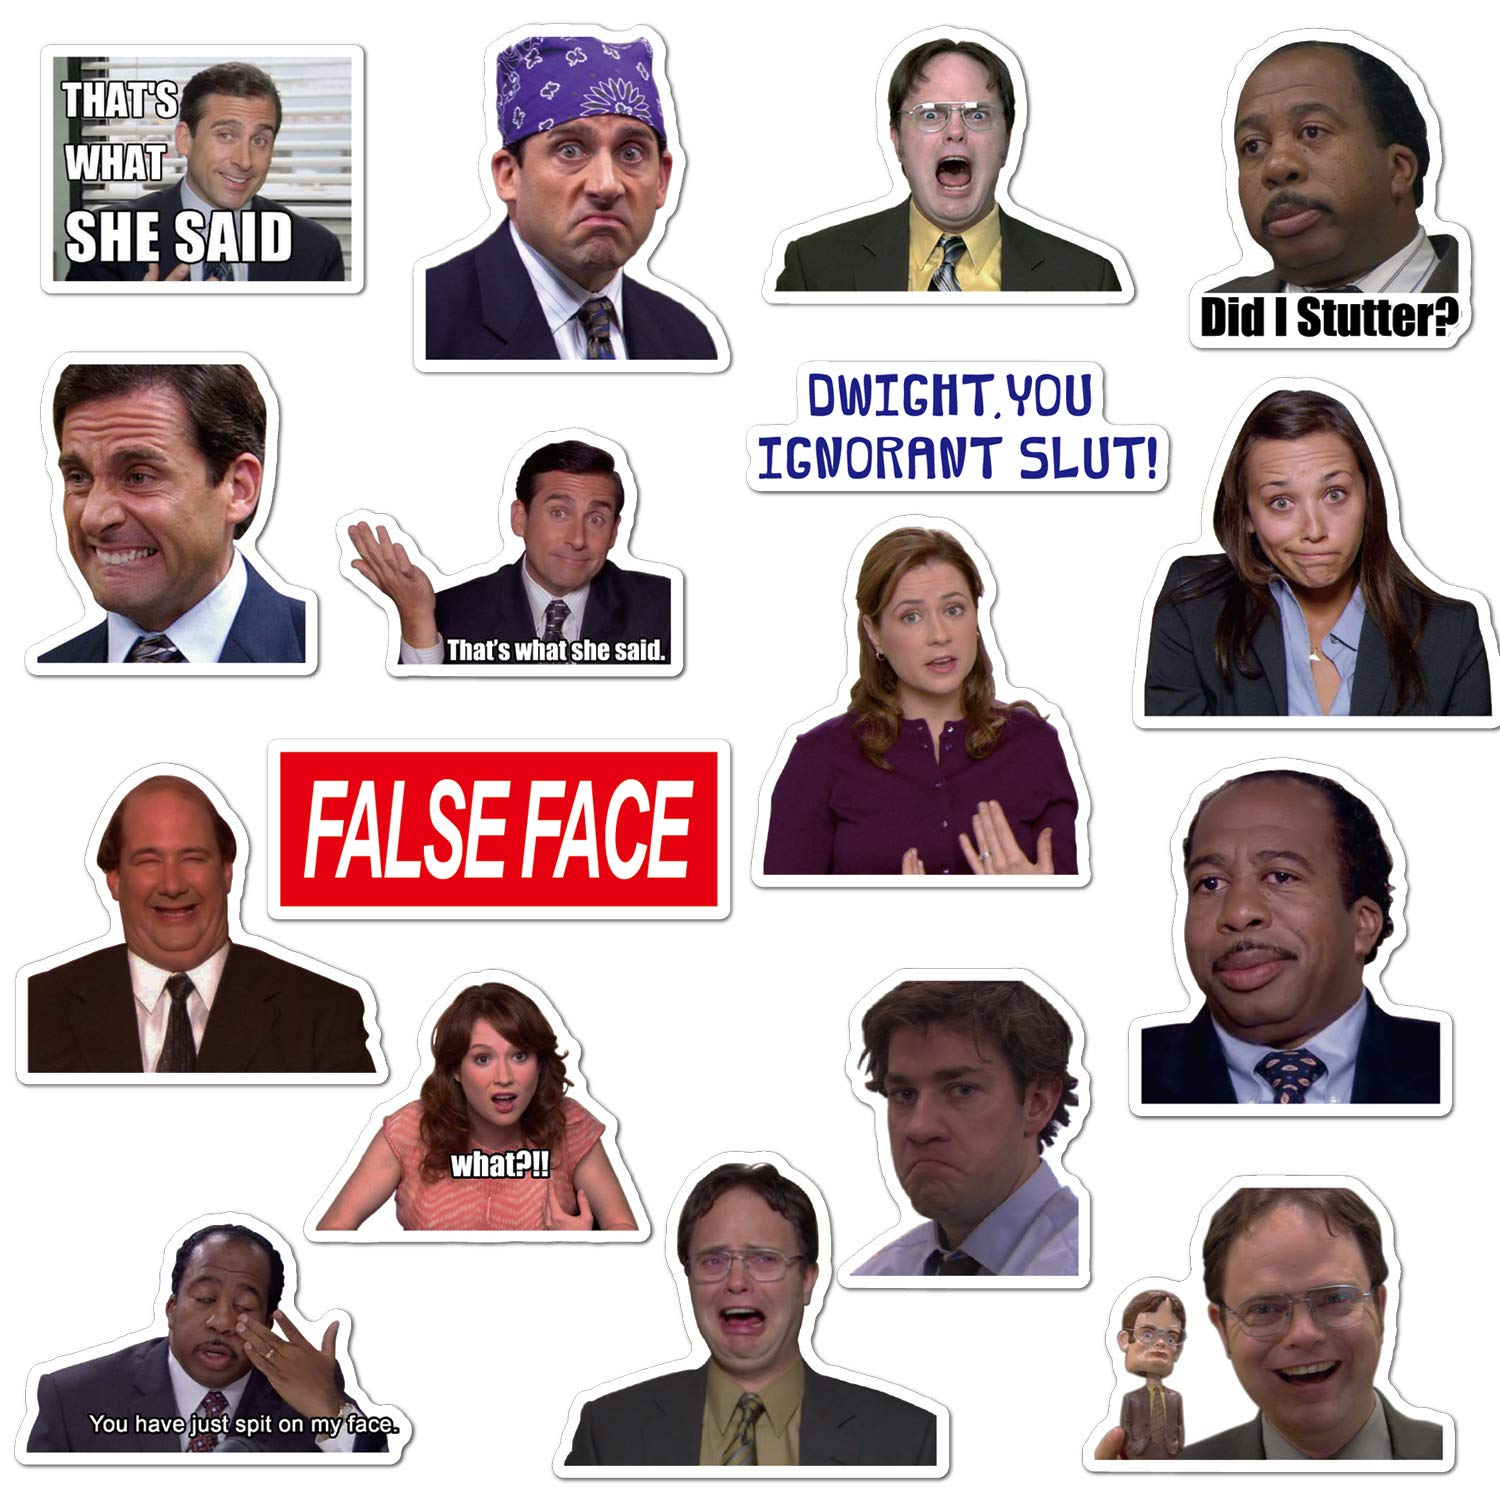 The Office Sticker Pack of 50 Stickers, Funny Office Laptop Stickers, Waterproof Vinyl Stickers for Water Bottle, Hydro Flask, Computer